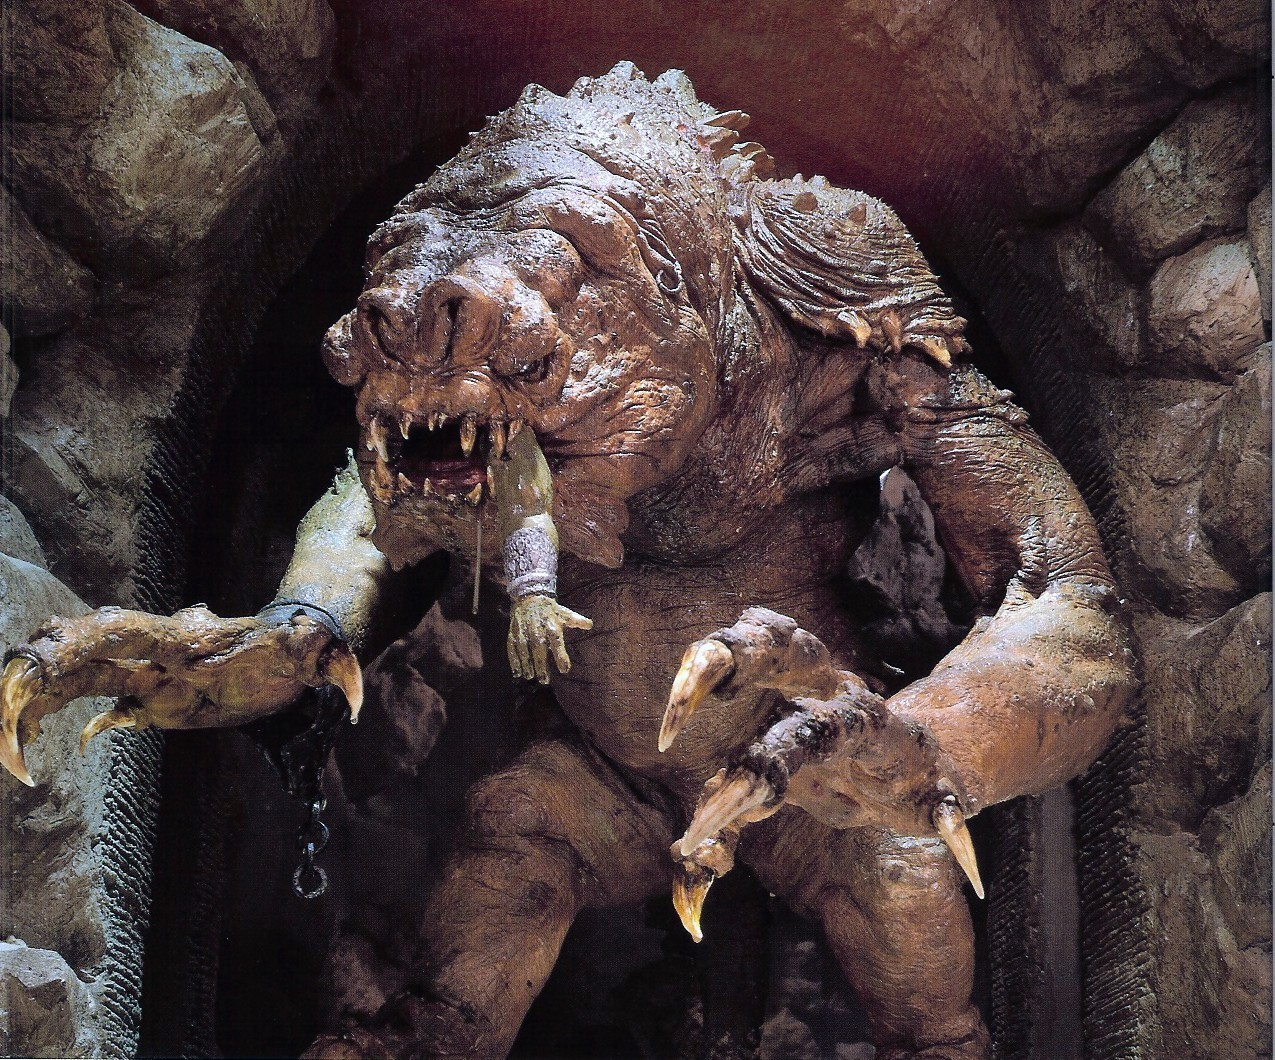 Rancor Star Wars Lego